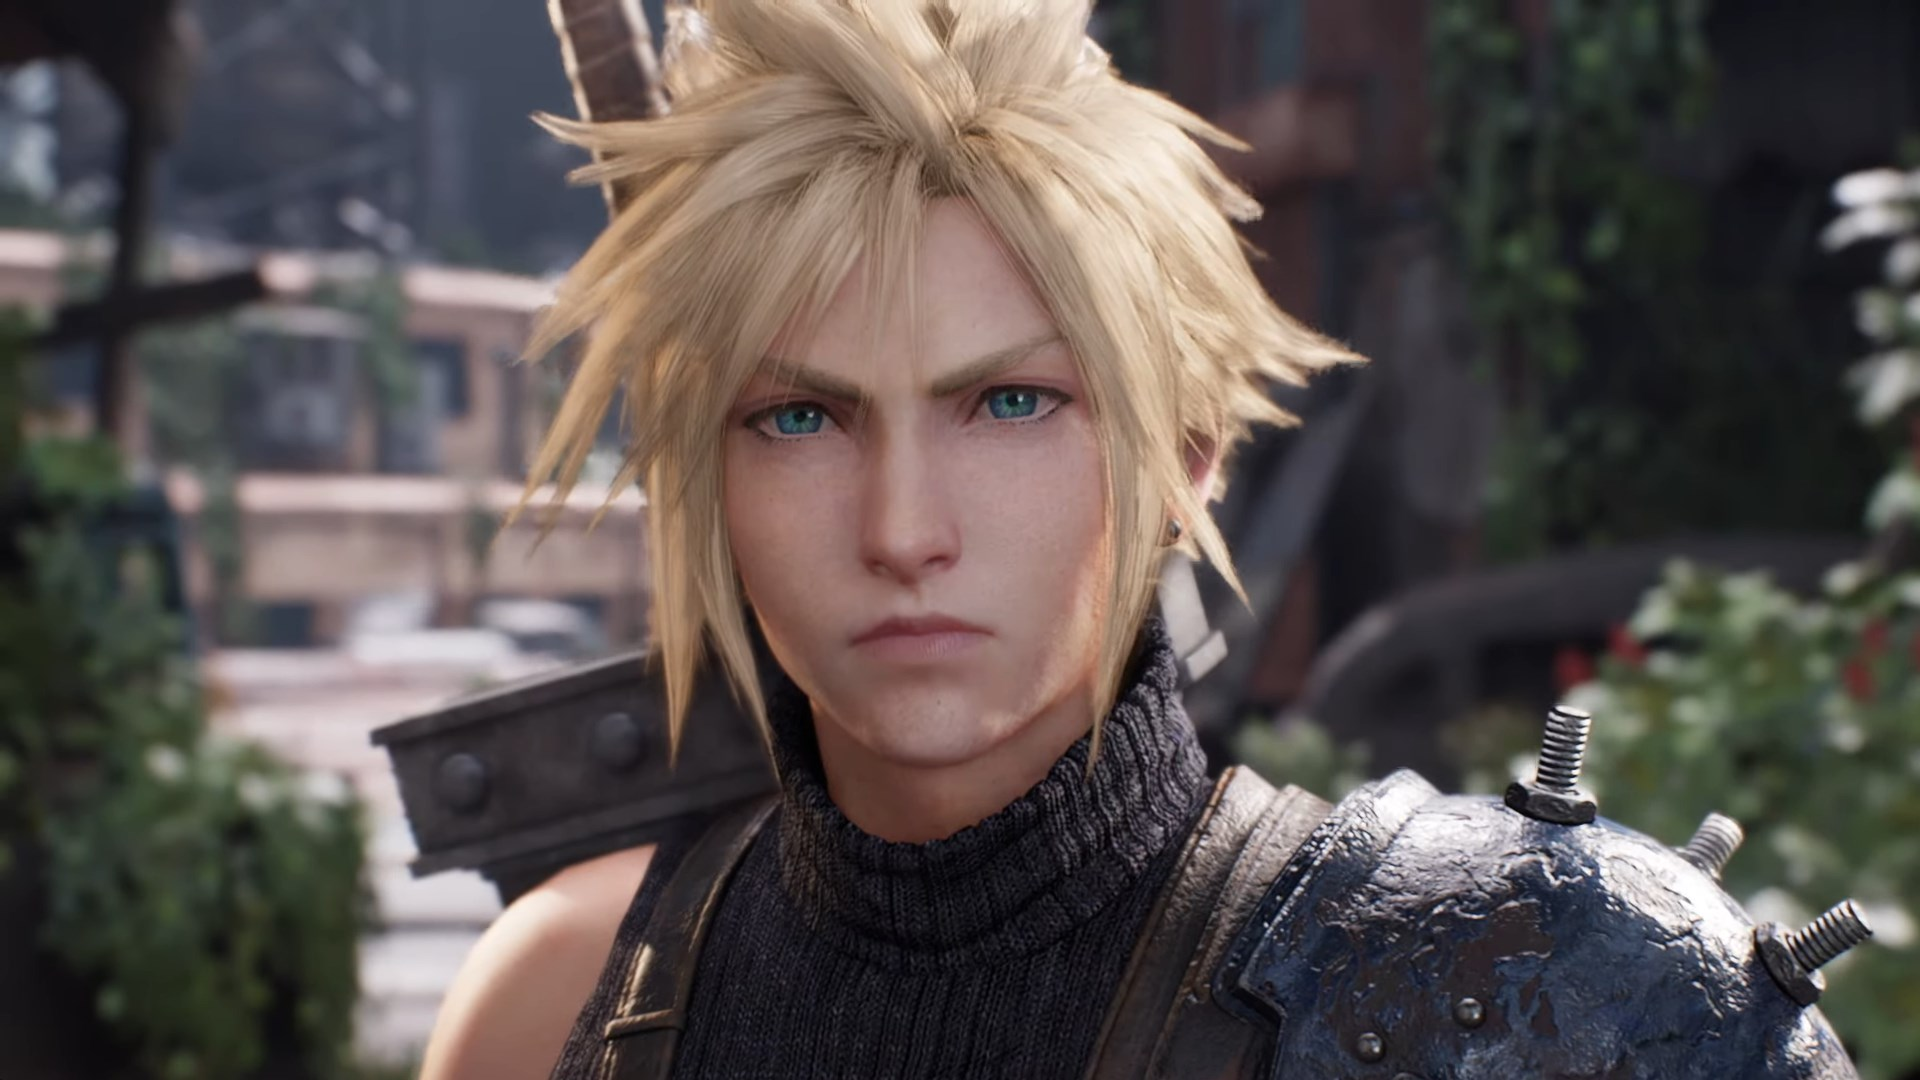 Our 5 favorite details in the new Final Fantasy 7 Remake trailer